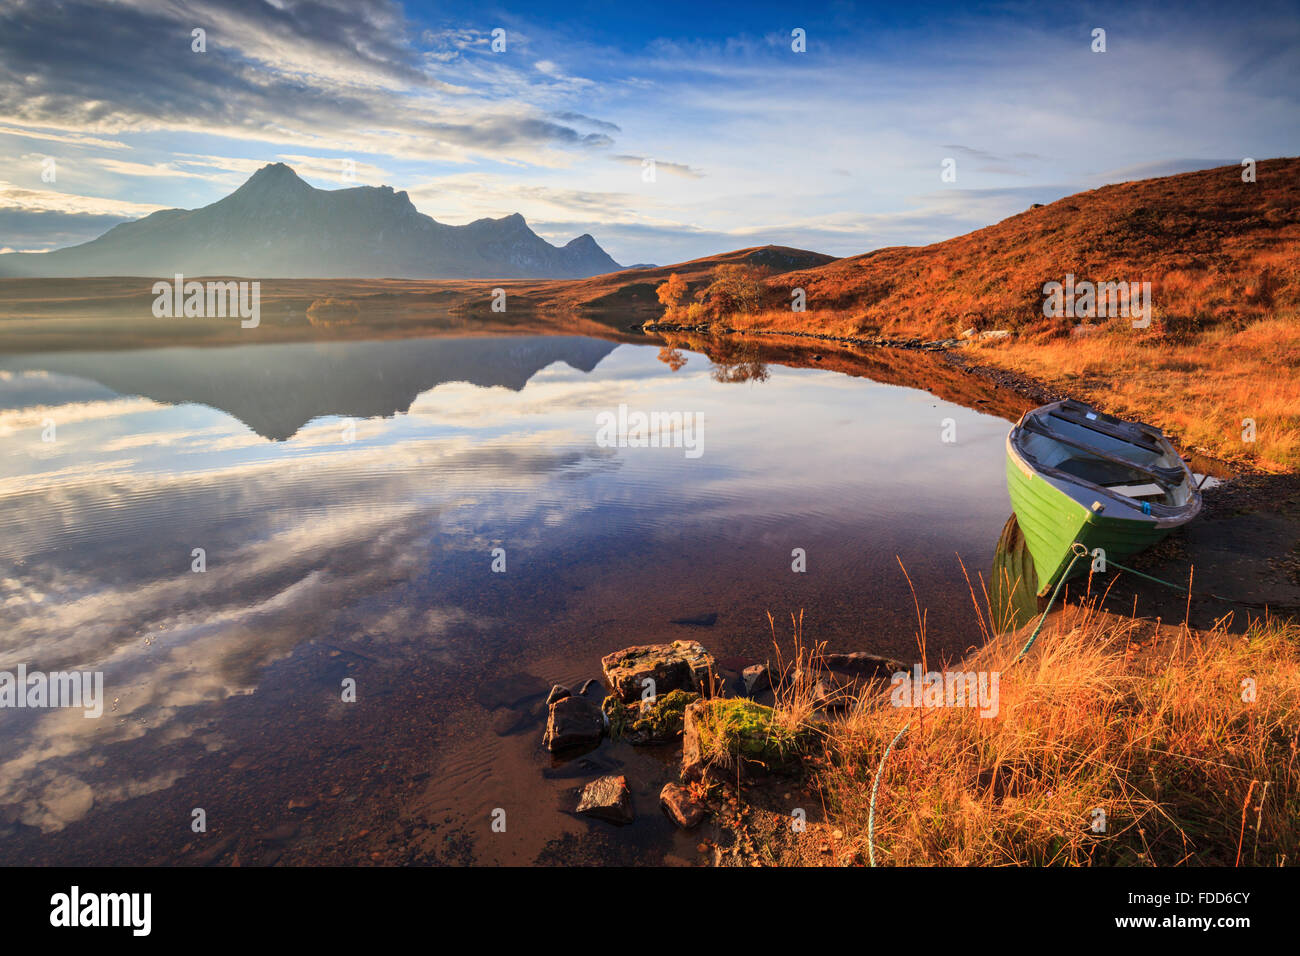 A boat on Loch Hakel near Tongue in North West Scotland, with Ben Loyal in the distance. - Stock Image